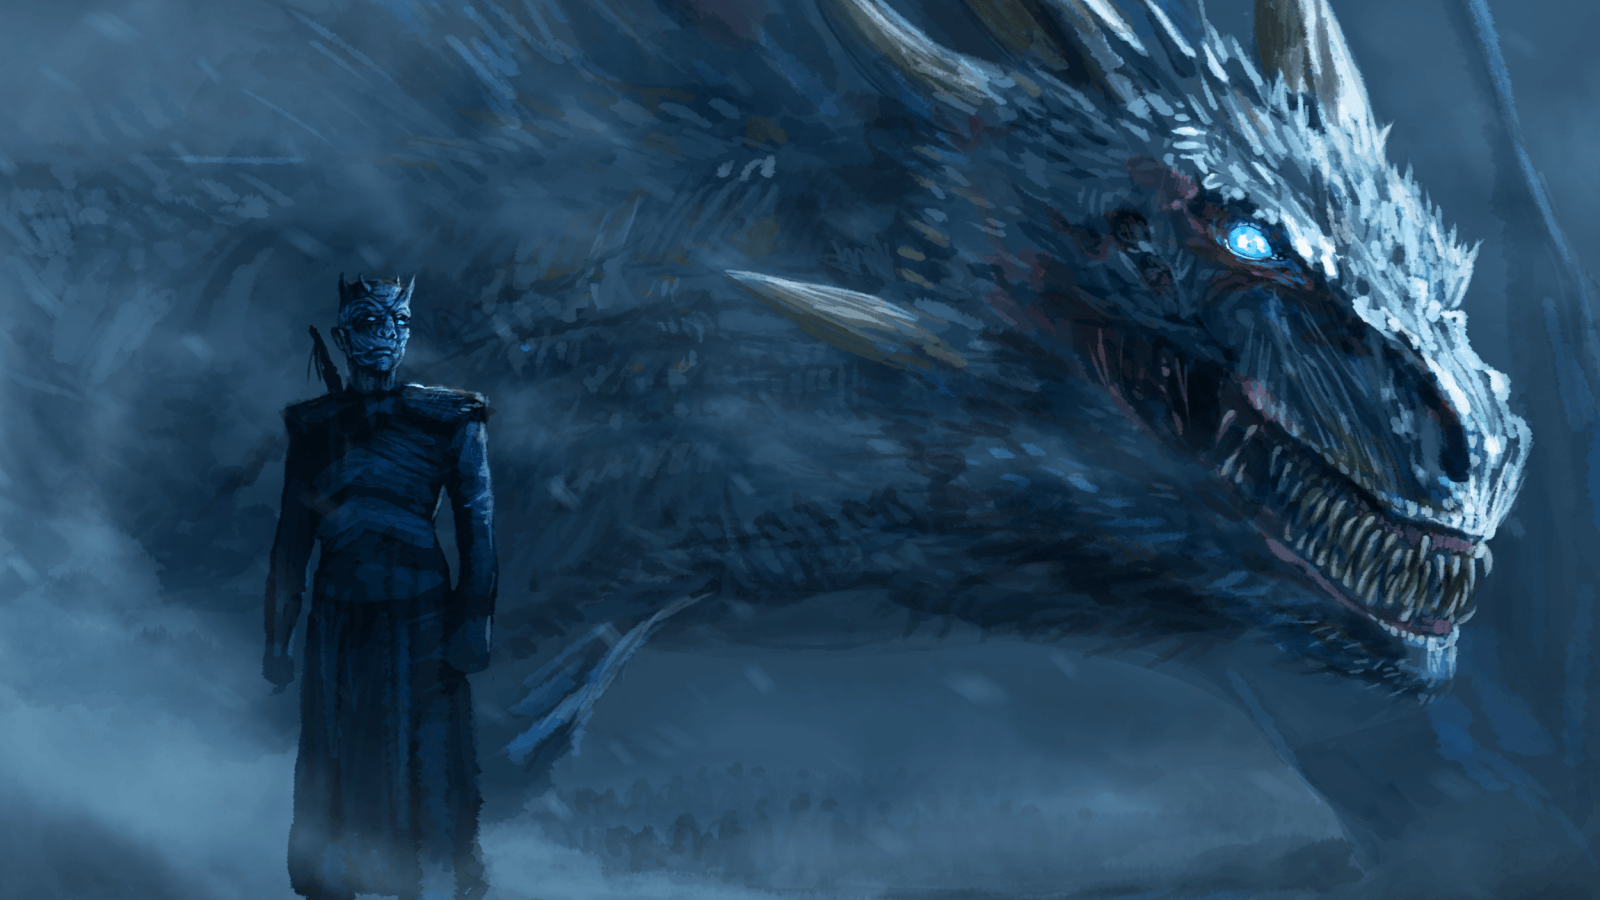 Download 1600x900 Game Of Thrones, Dragon, Artwork, Tv Series